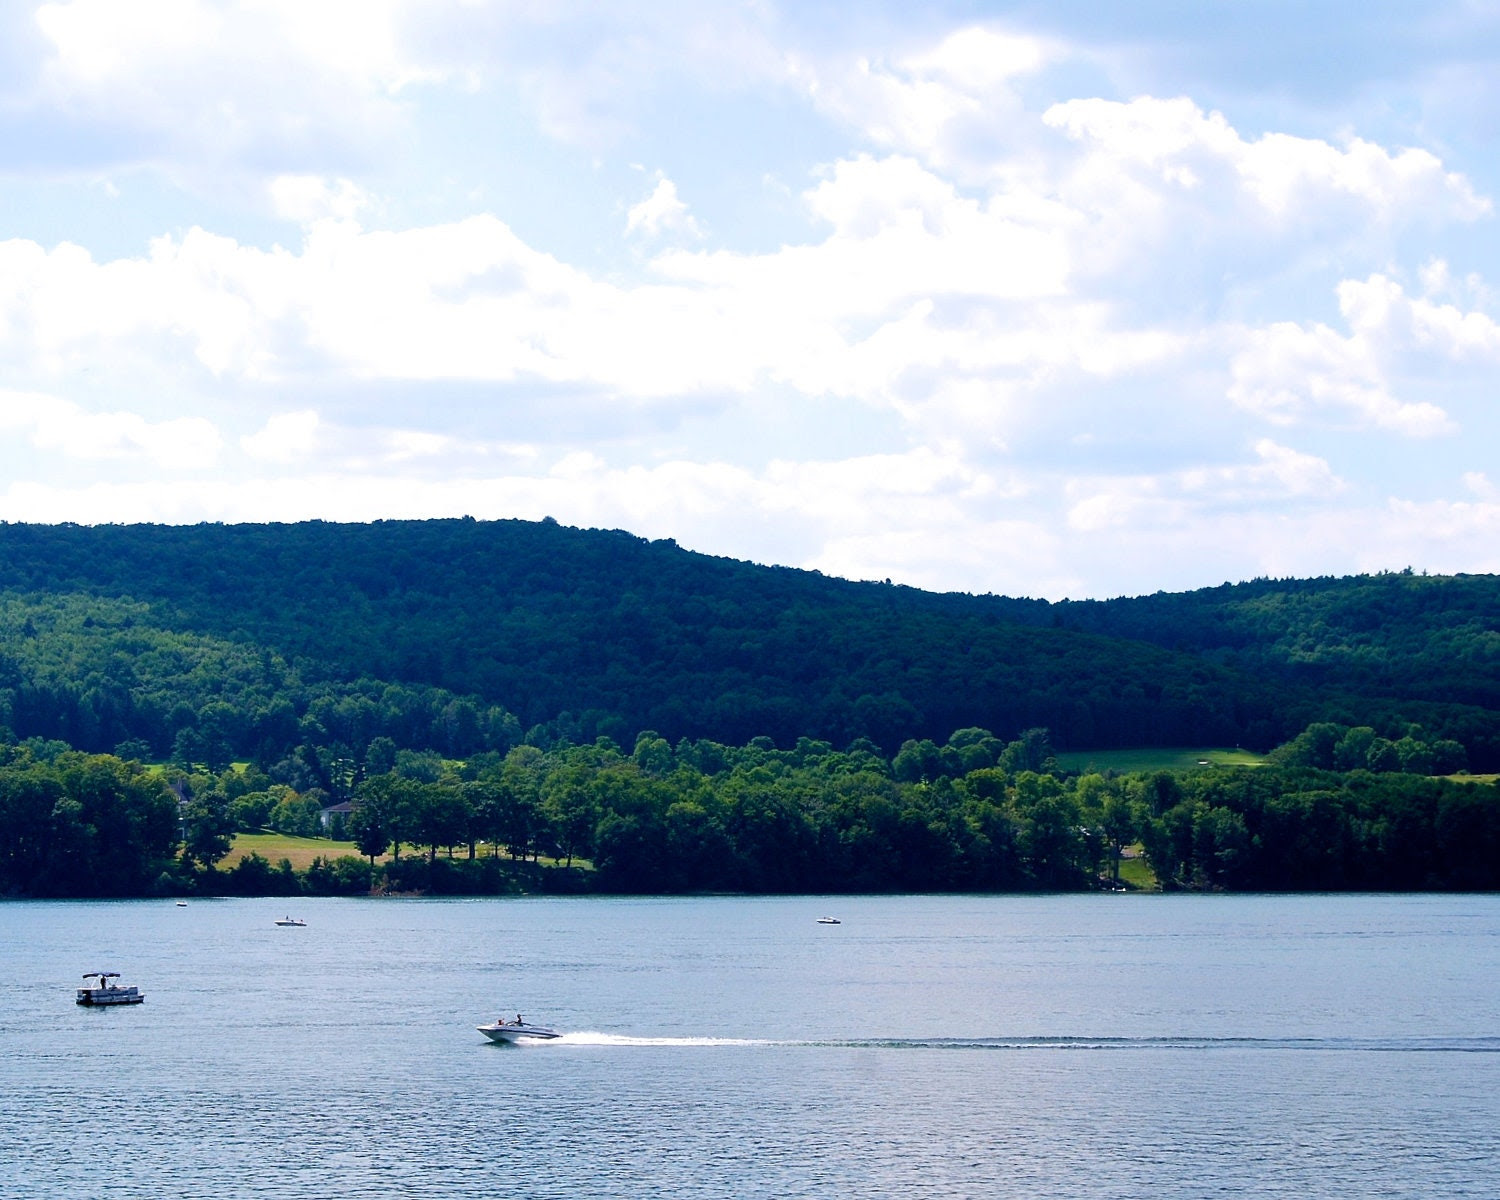 Nature Photography -Relaxing Blue Waters in New York State - Nautical, Summer, Lake, Travel Photography - PetitePastiche